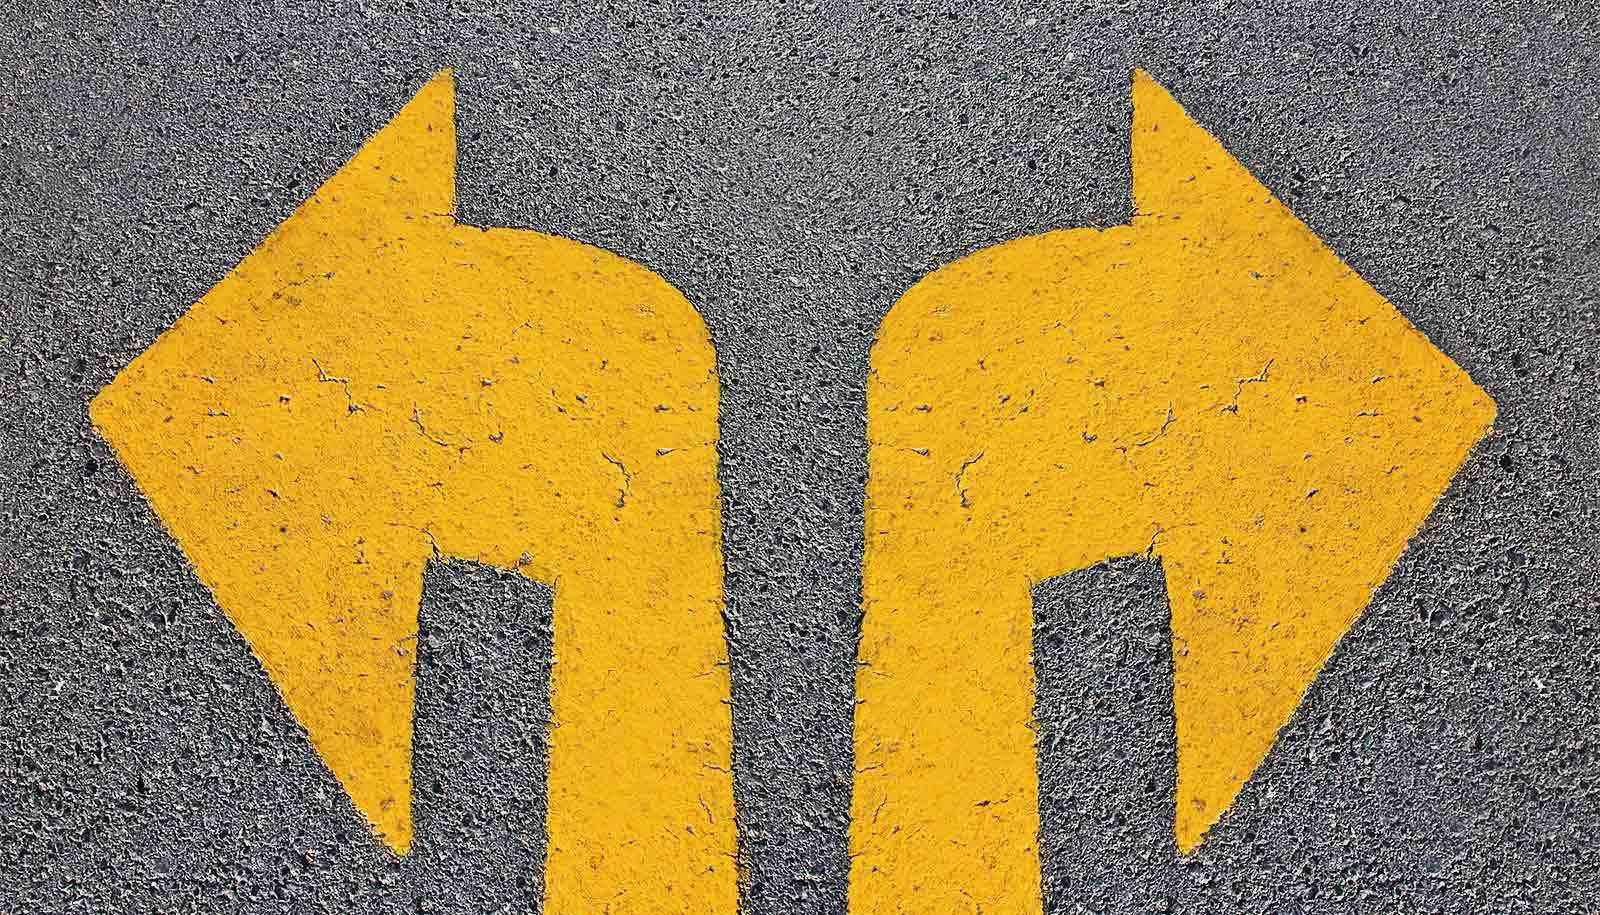 Two yellow arrows on asphalt point left and right